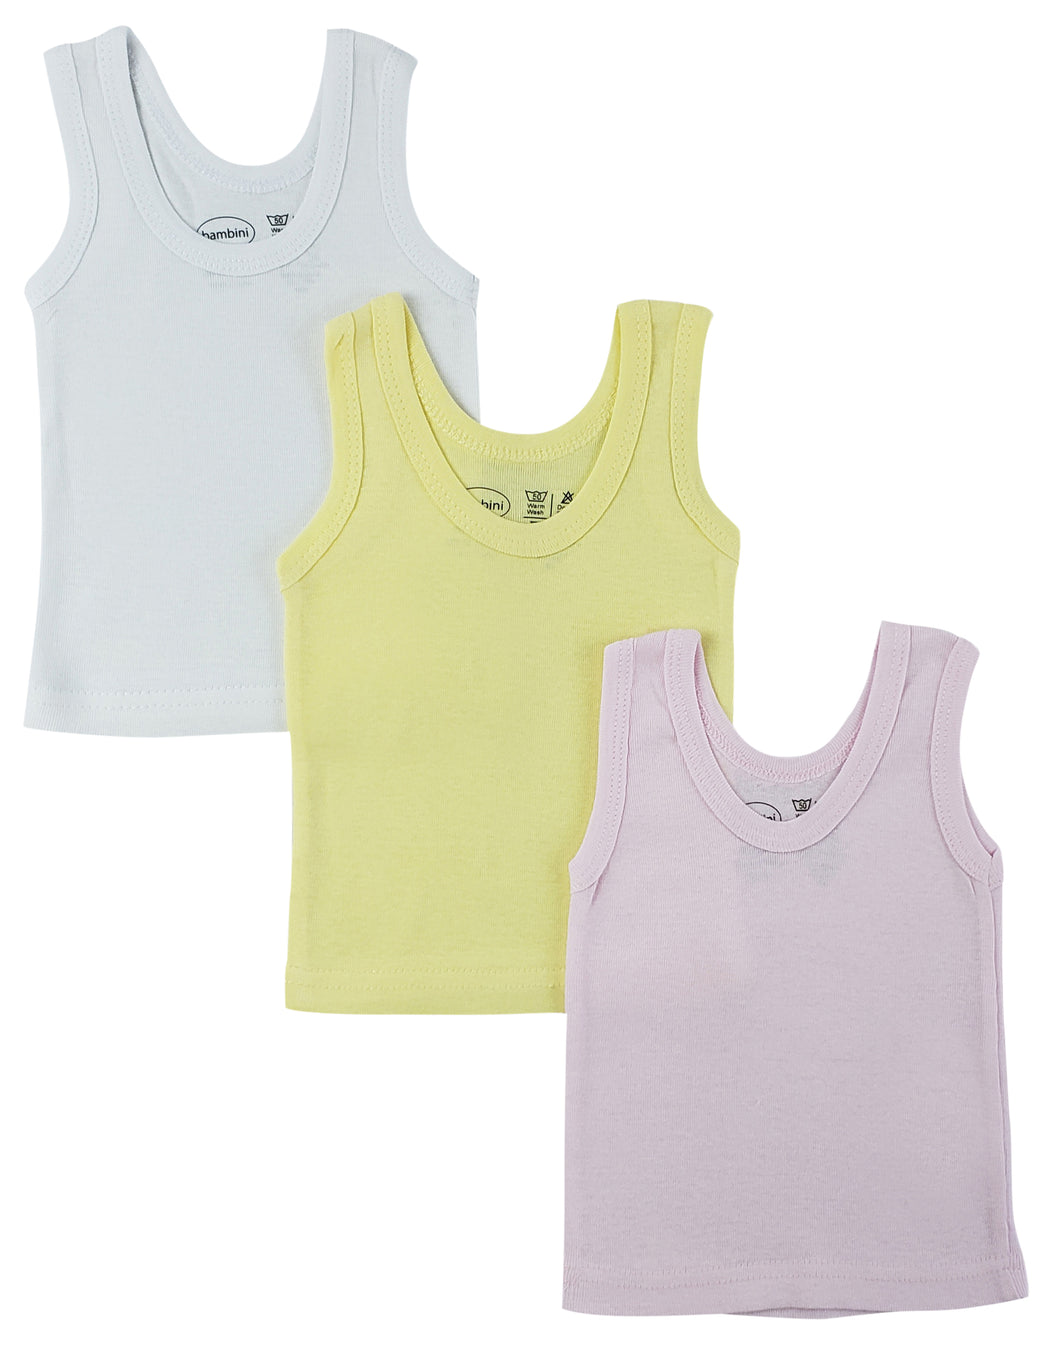 Girls Pastel Tank Top 3 Pack